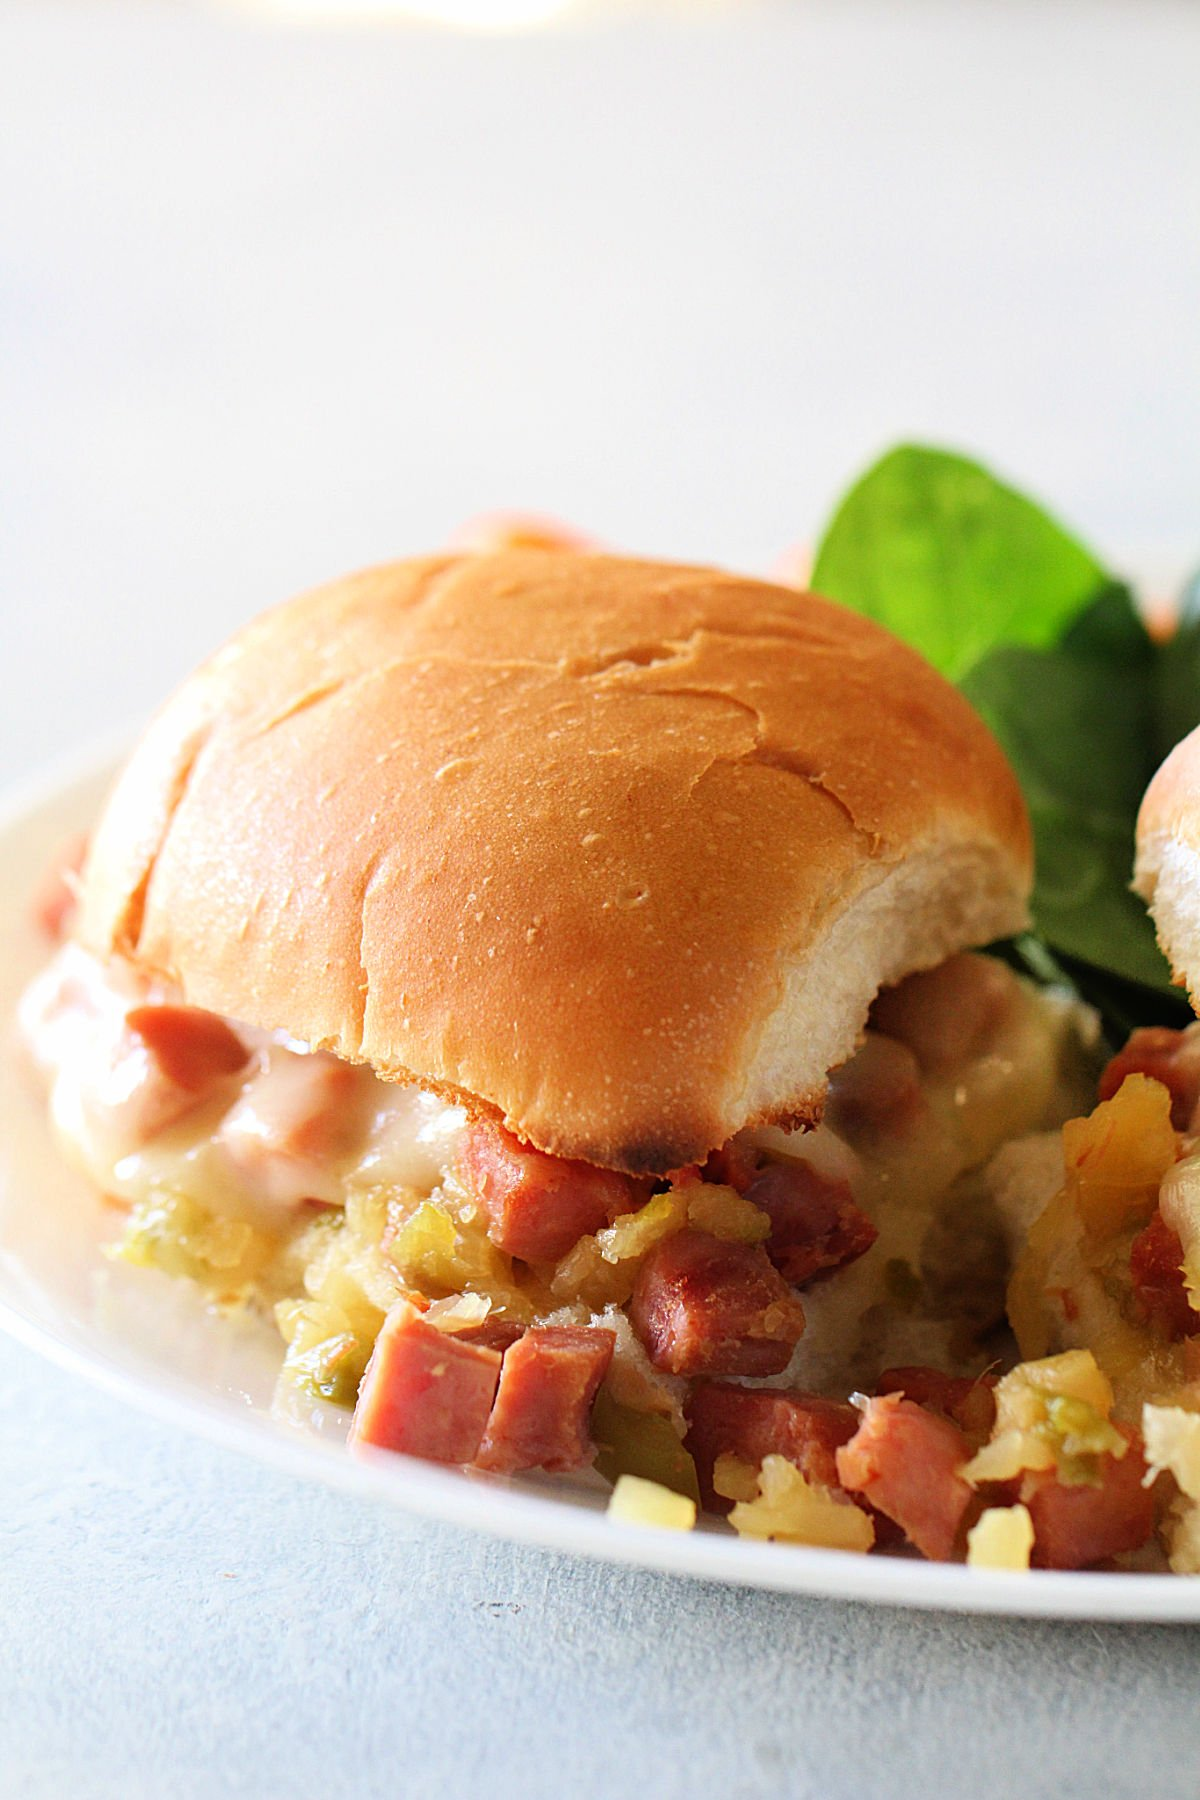 Slow Cooker Ham and Pineapple Sandwiches Recipe